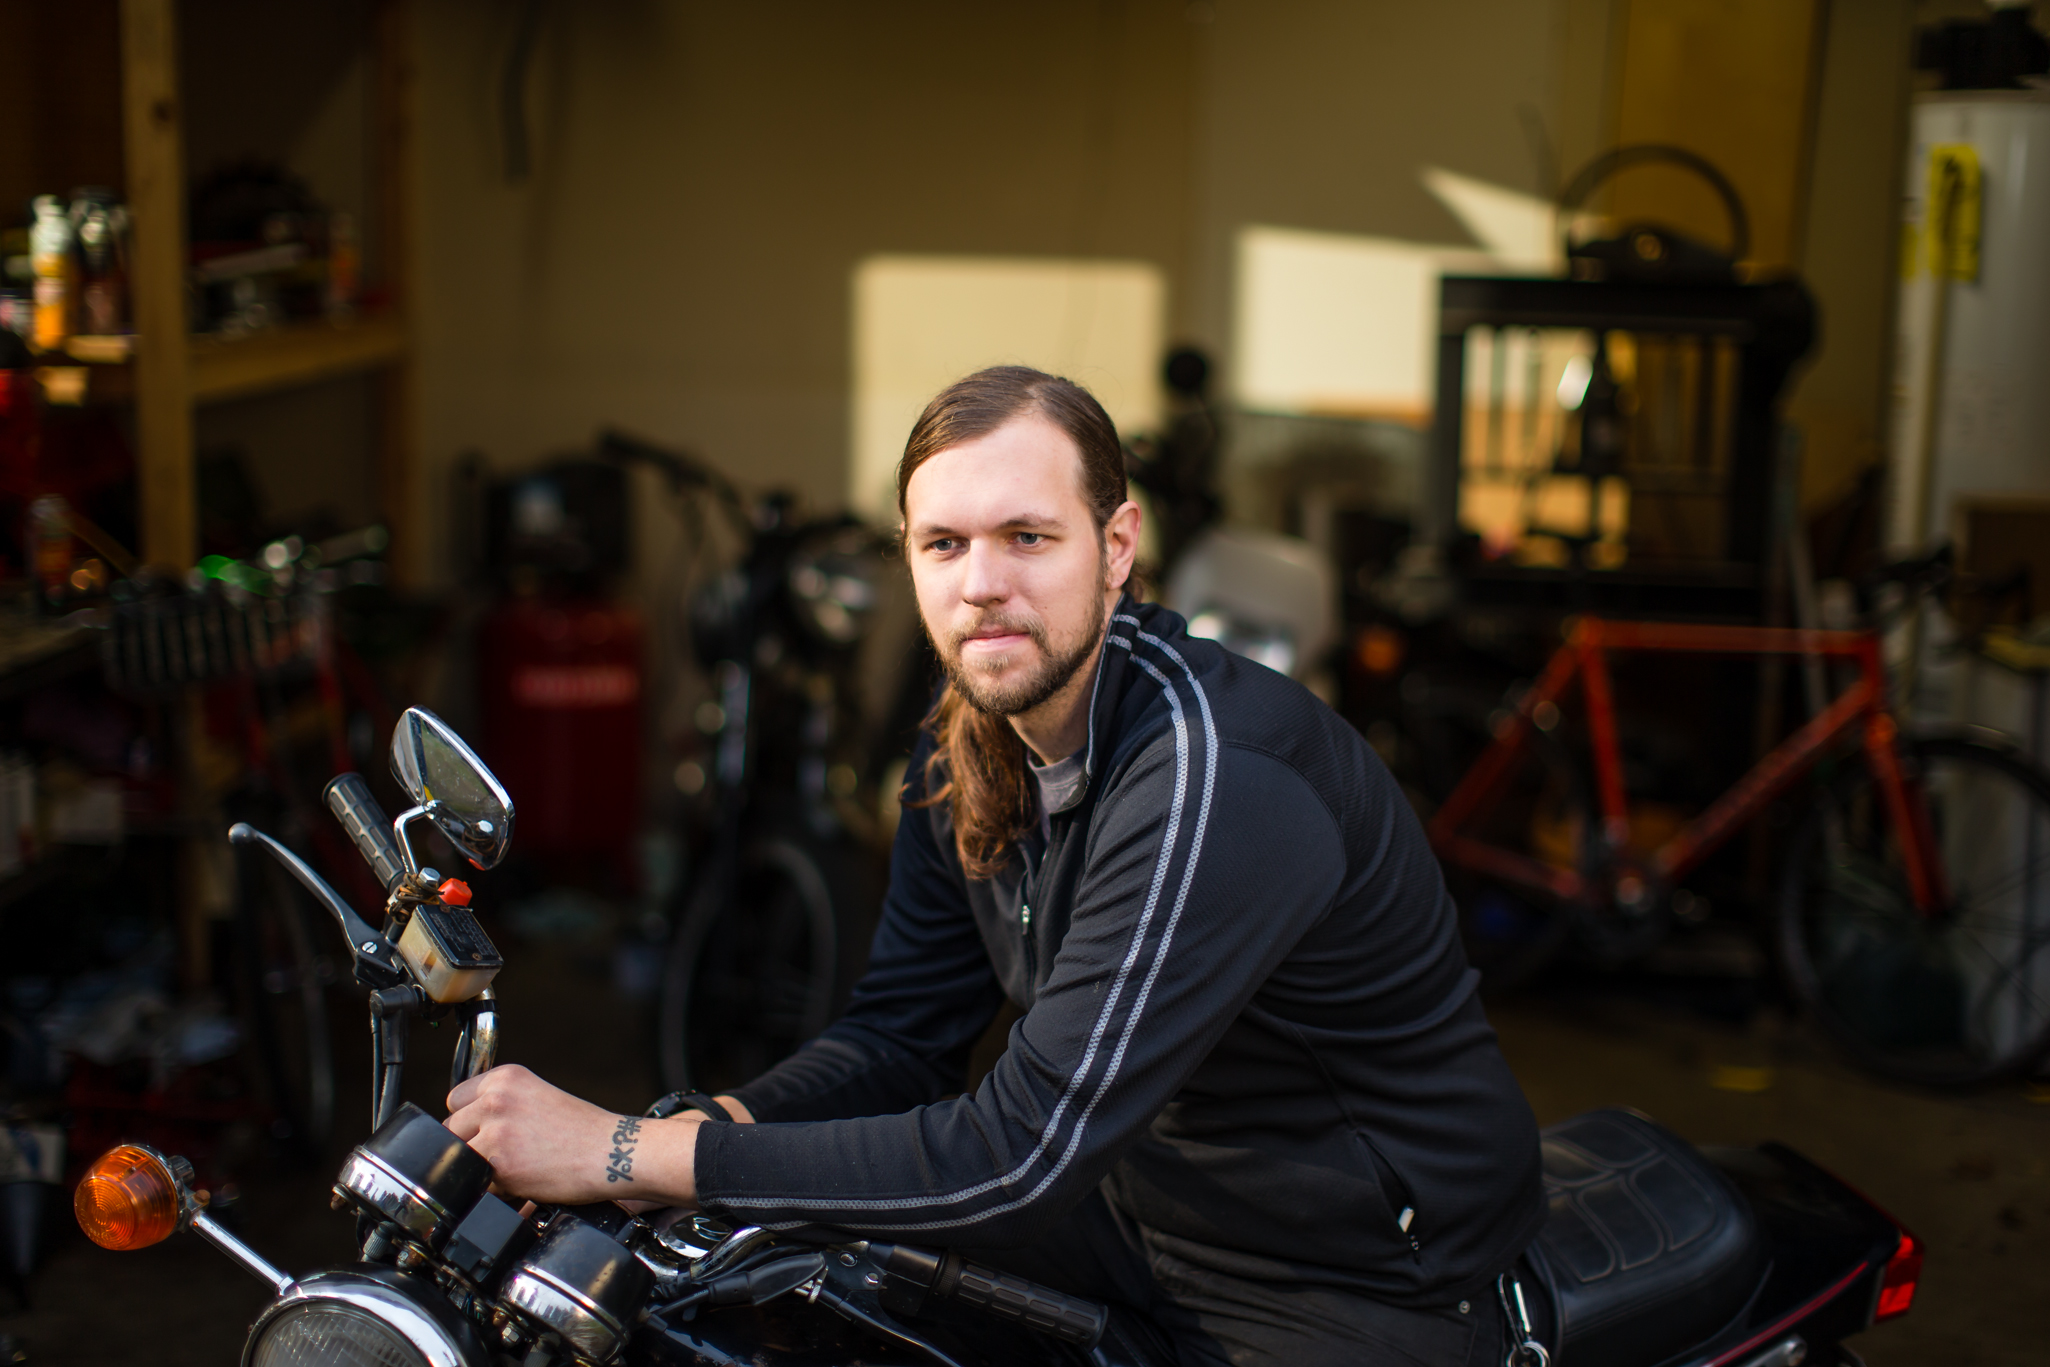 On Saturday, December 6, 2014 Tom Daly, owner of WTF Bikes, poses for a portrait on one of his new motorcycles at his home in Millwaukie, OR. A year ago Daly considered himself invincible and decided not to buy health insurance.  